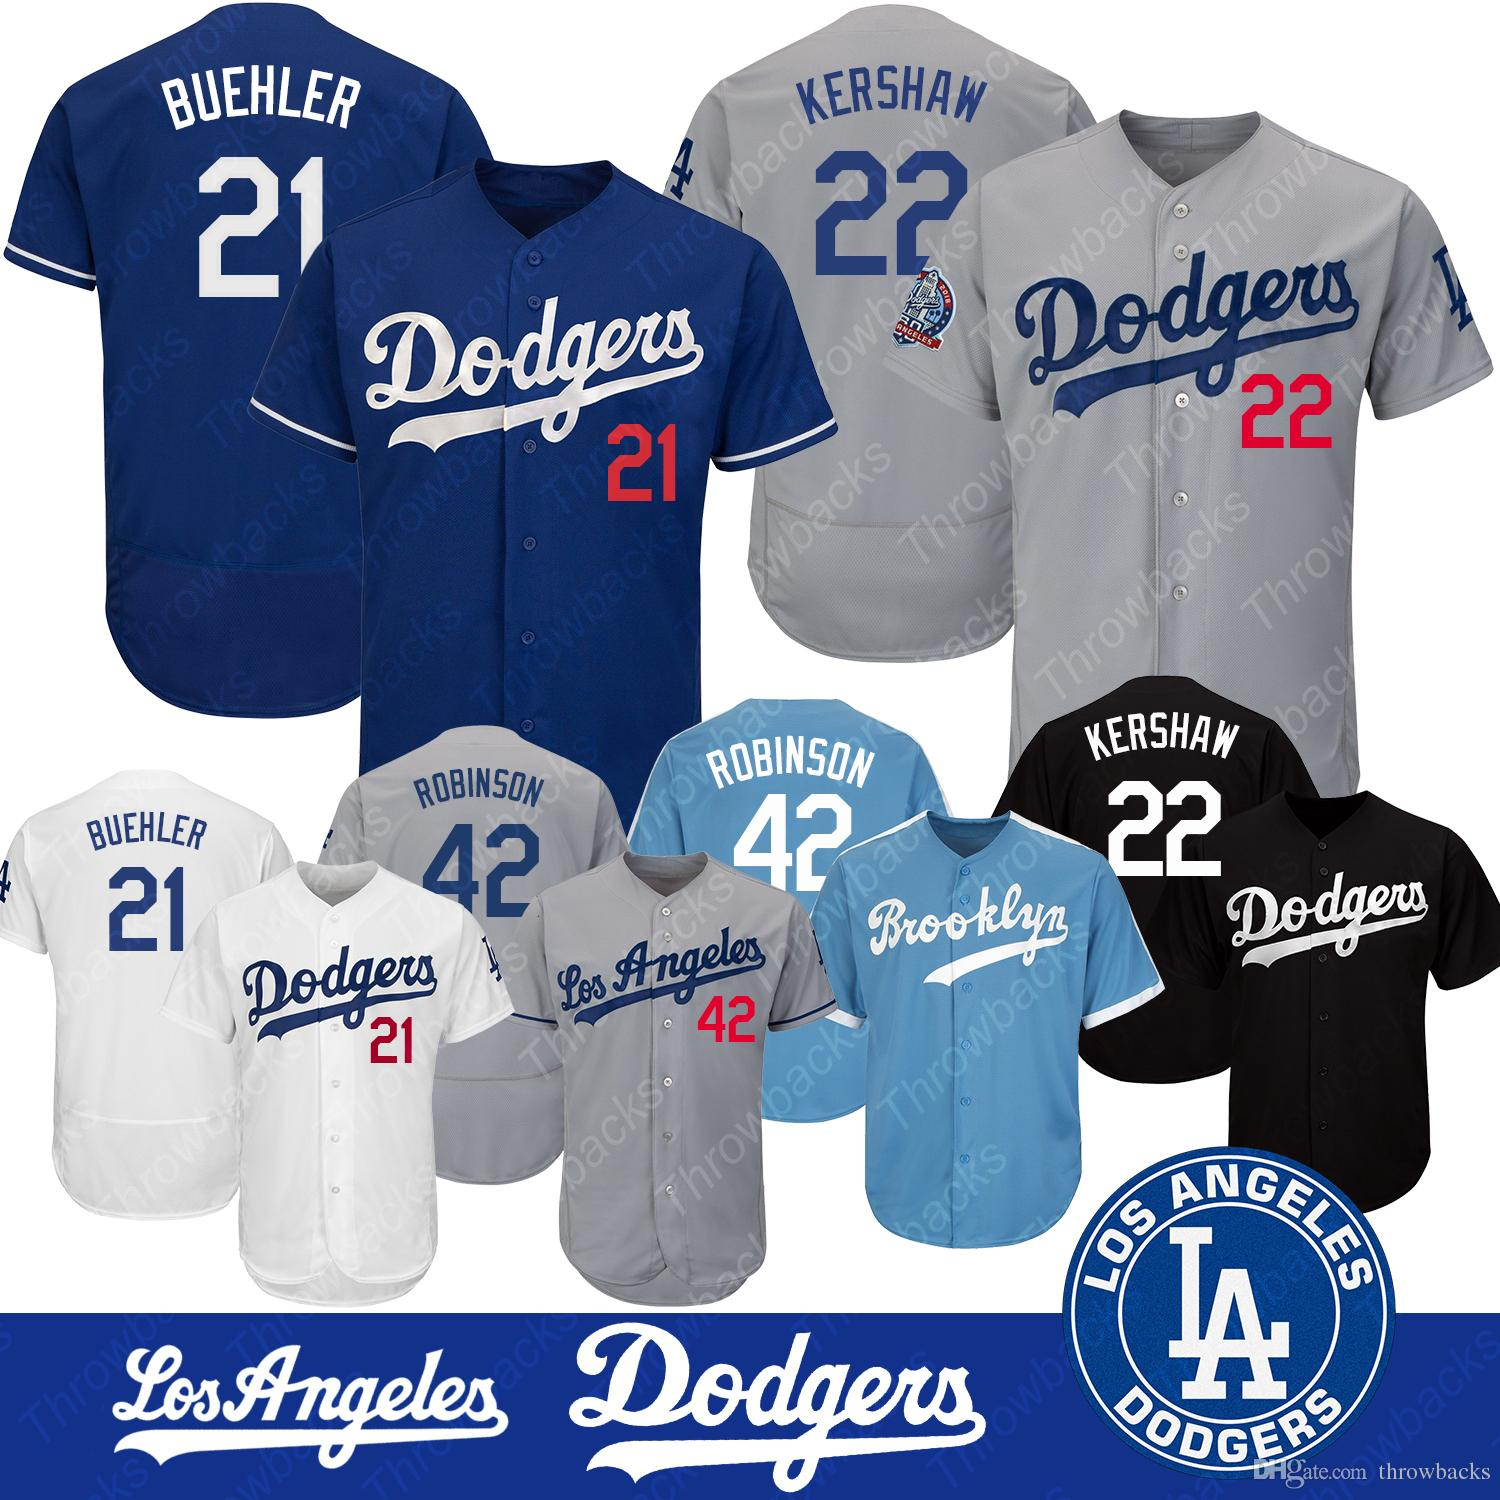 8cff8b60e22 Compre Camisa De Los Angeles Dodgers 42 Jackie Robinson 22 Clayton Kershaw  21 Camiseta De Basquete Walker Buehler Felxbase Cool Base De Throwbacks